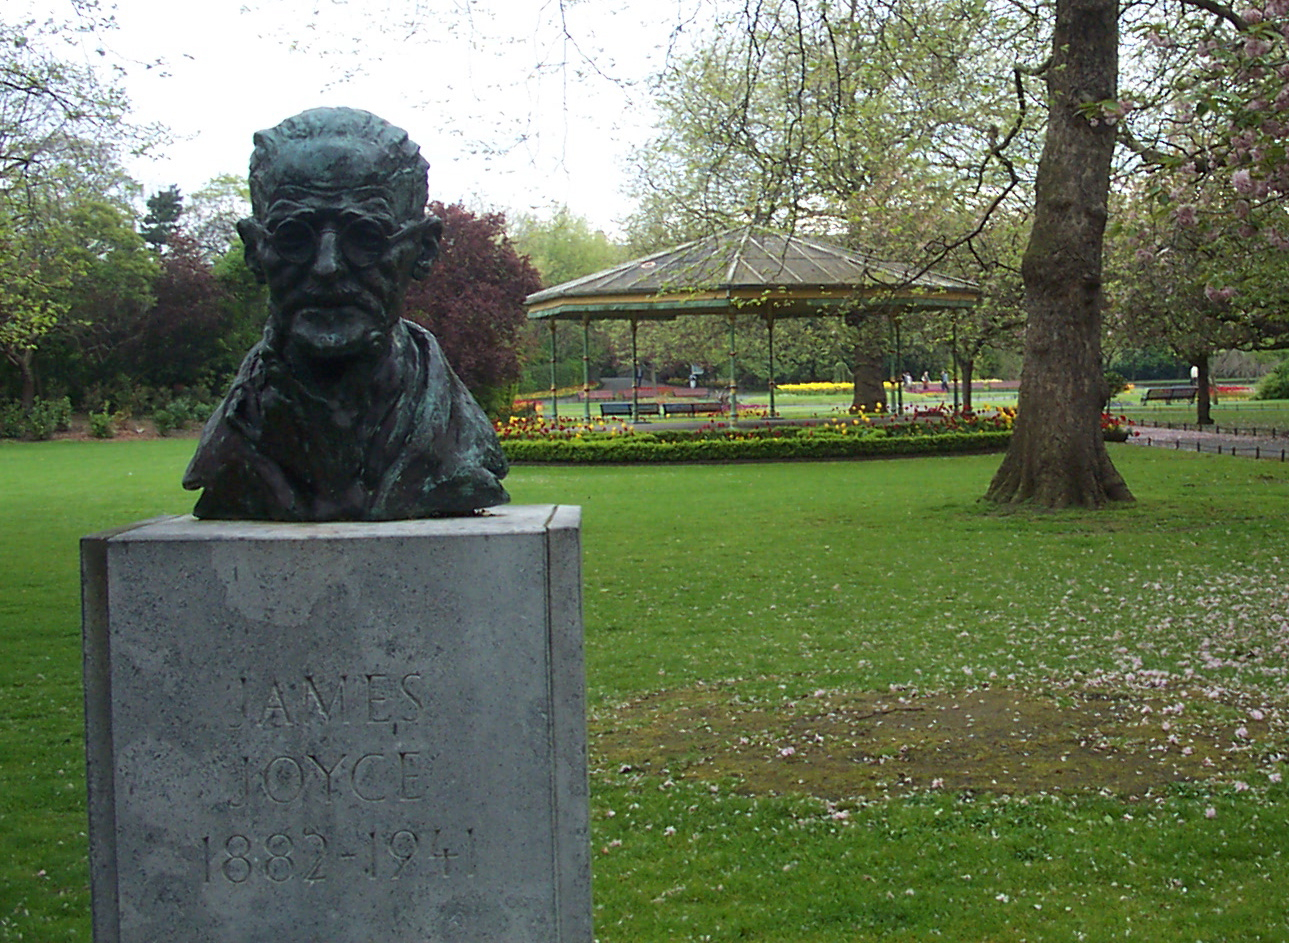 joyces dublin + essays Joyces dublin essays bust of james joyce in st stephen s green dublin columbia university the boarding house james joyce analysis essays james joyce statue in dublin.